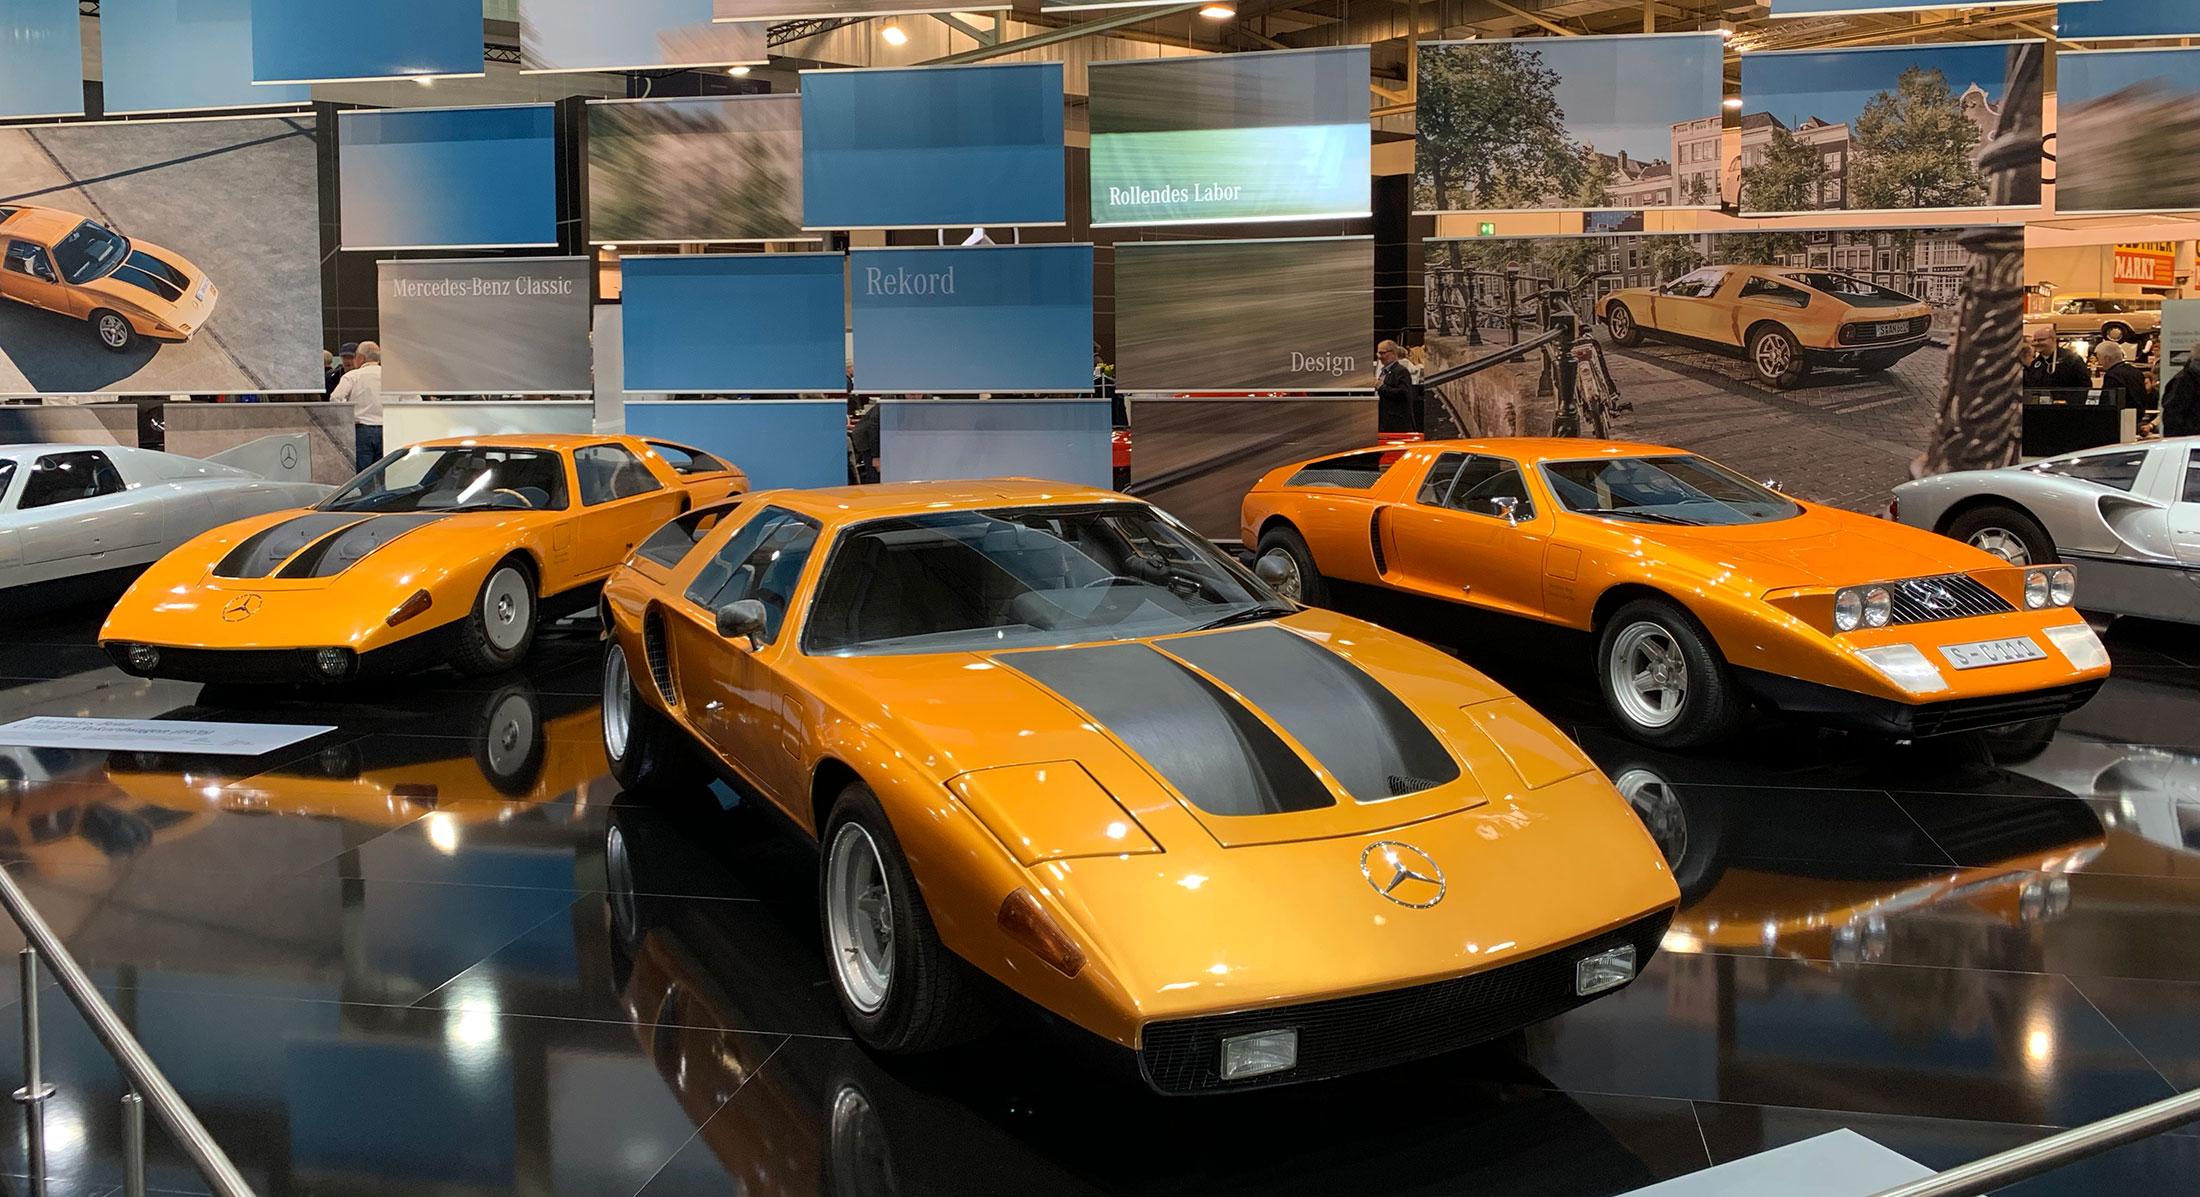 The Mercedes Benz Exhibit had some amazing cars that I'd never seen before - apparently Orange was big back then?